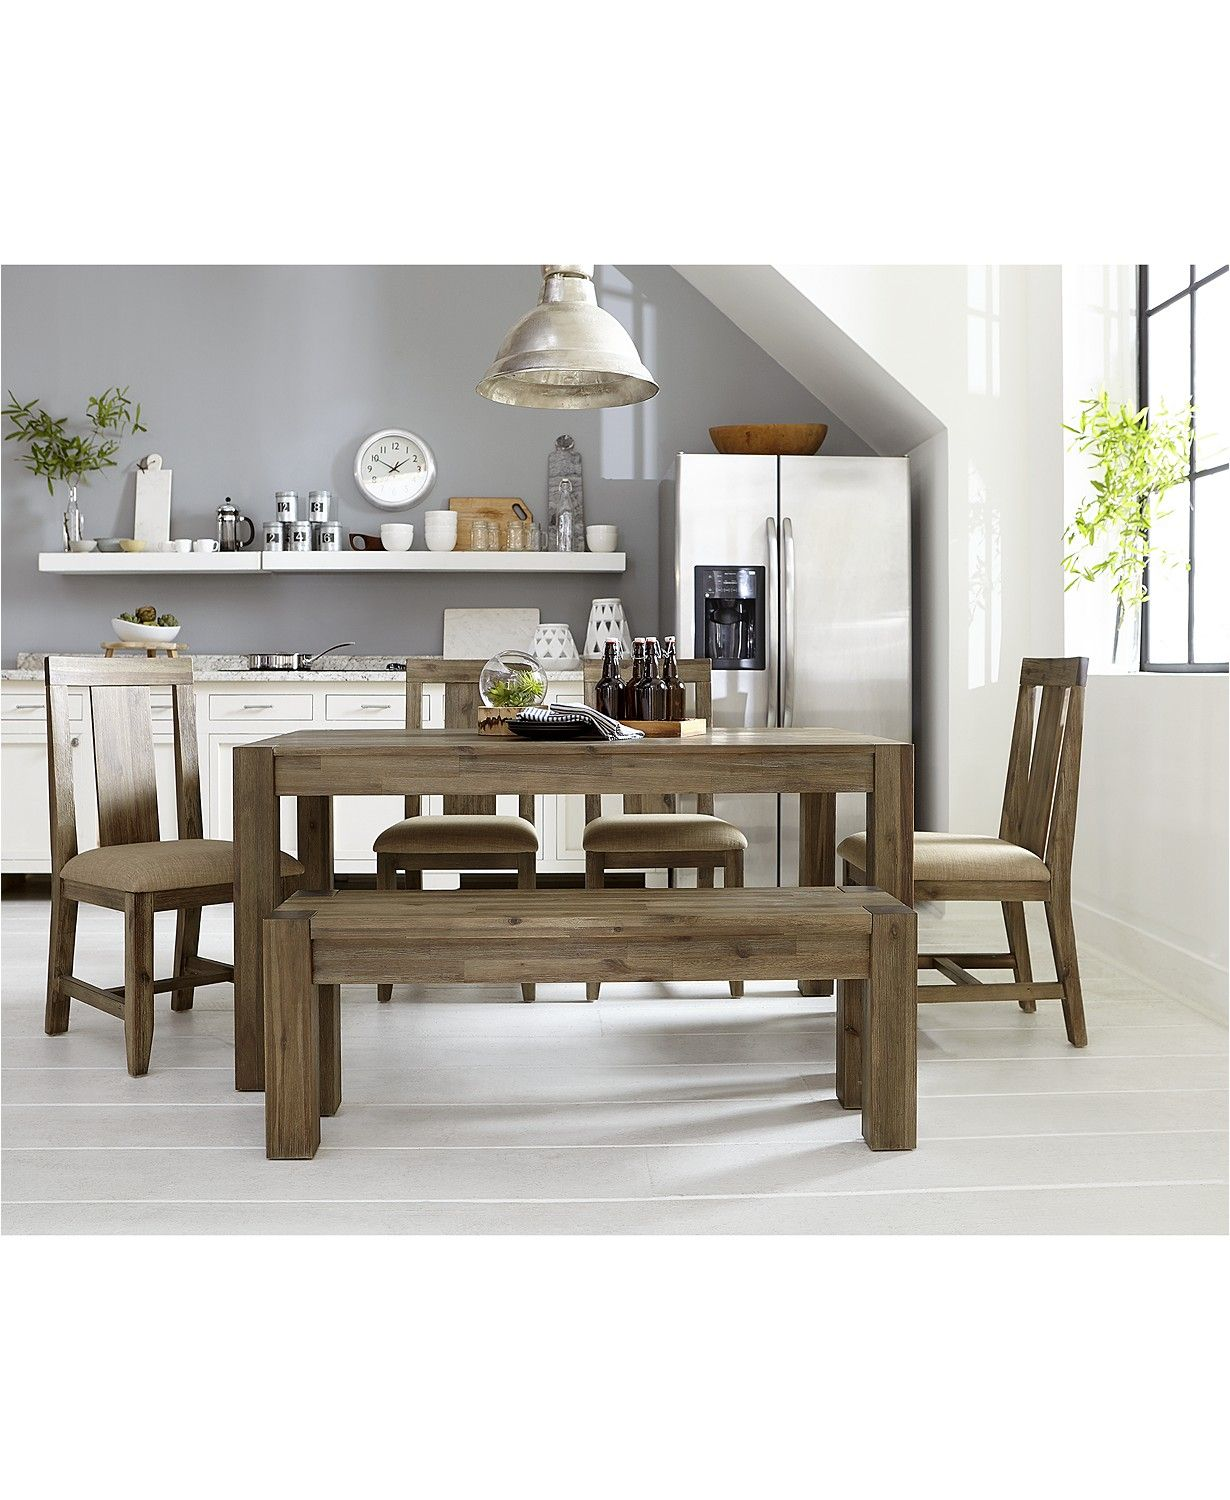 Furniture Canyon Small 7 Pc Dining Set 60 Dining Table 6